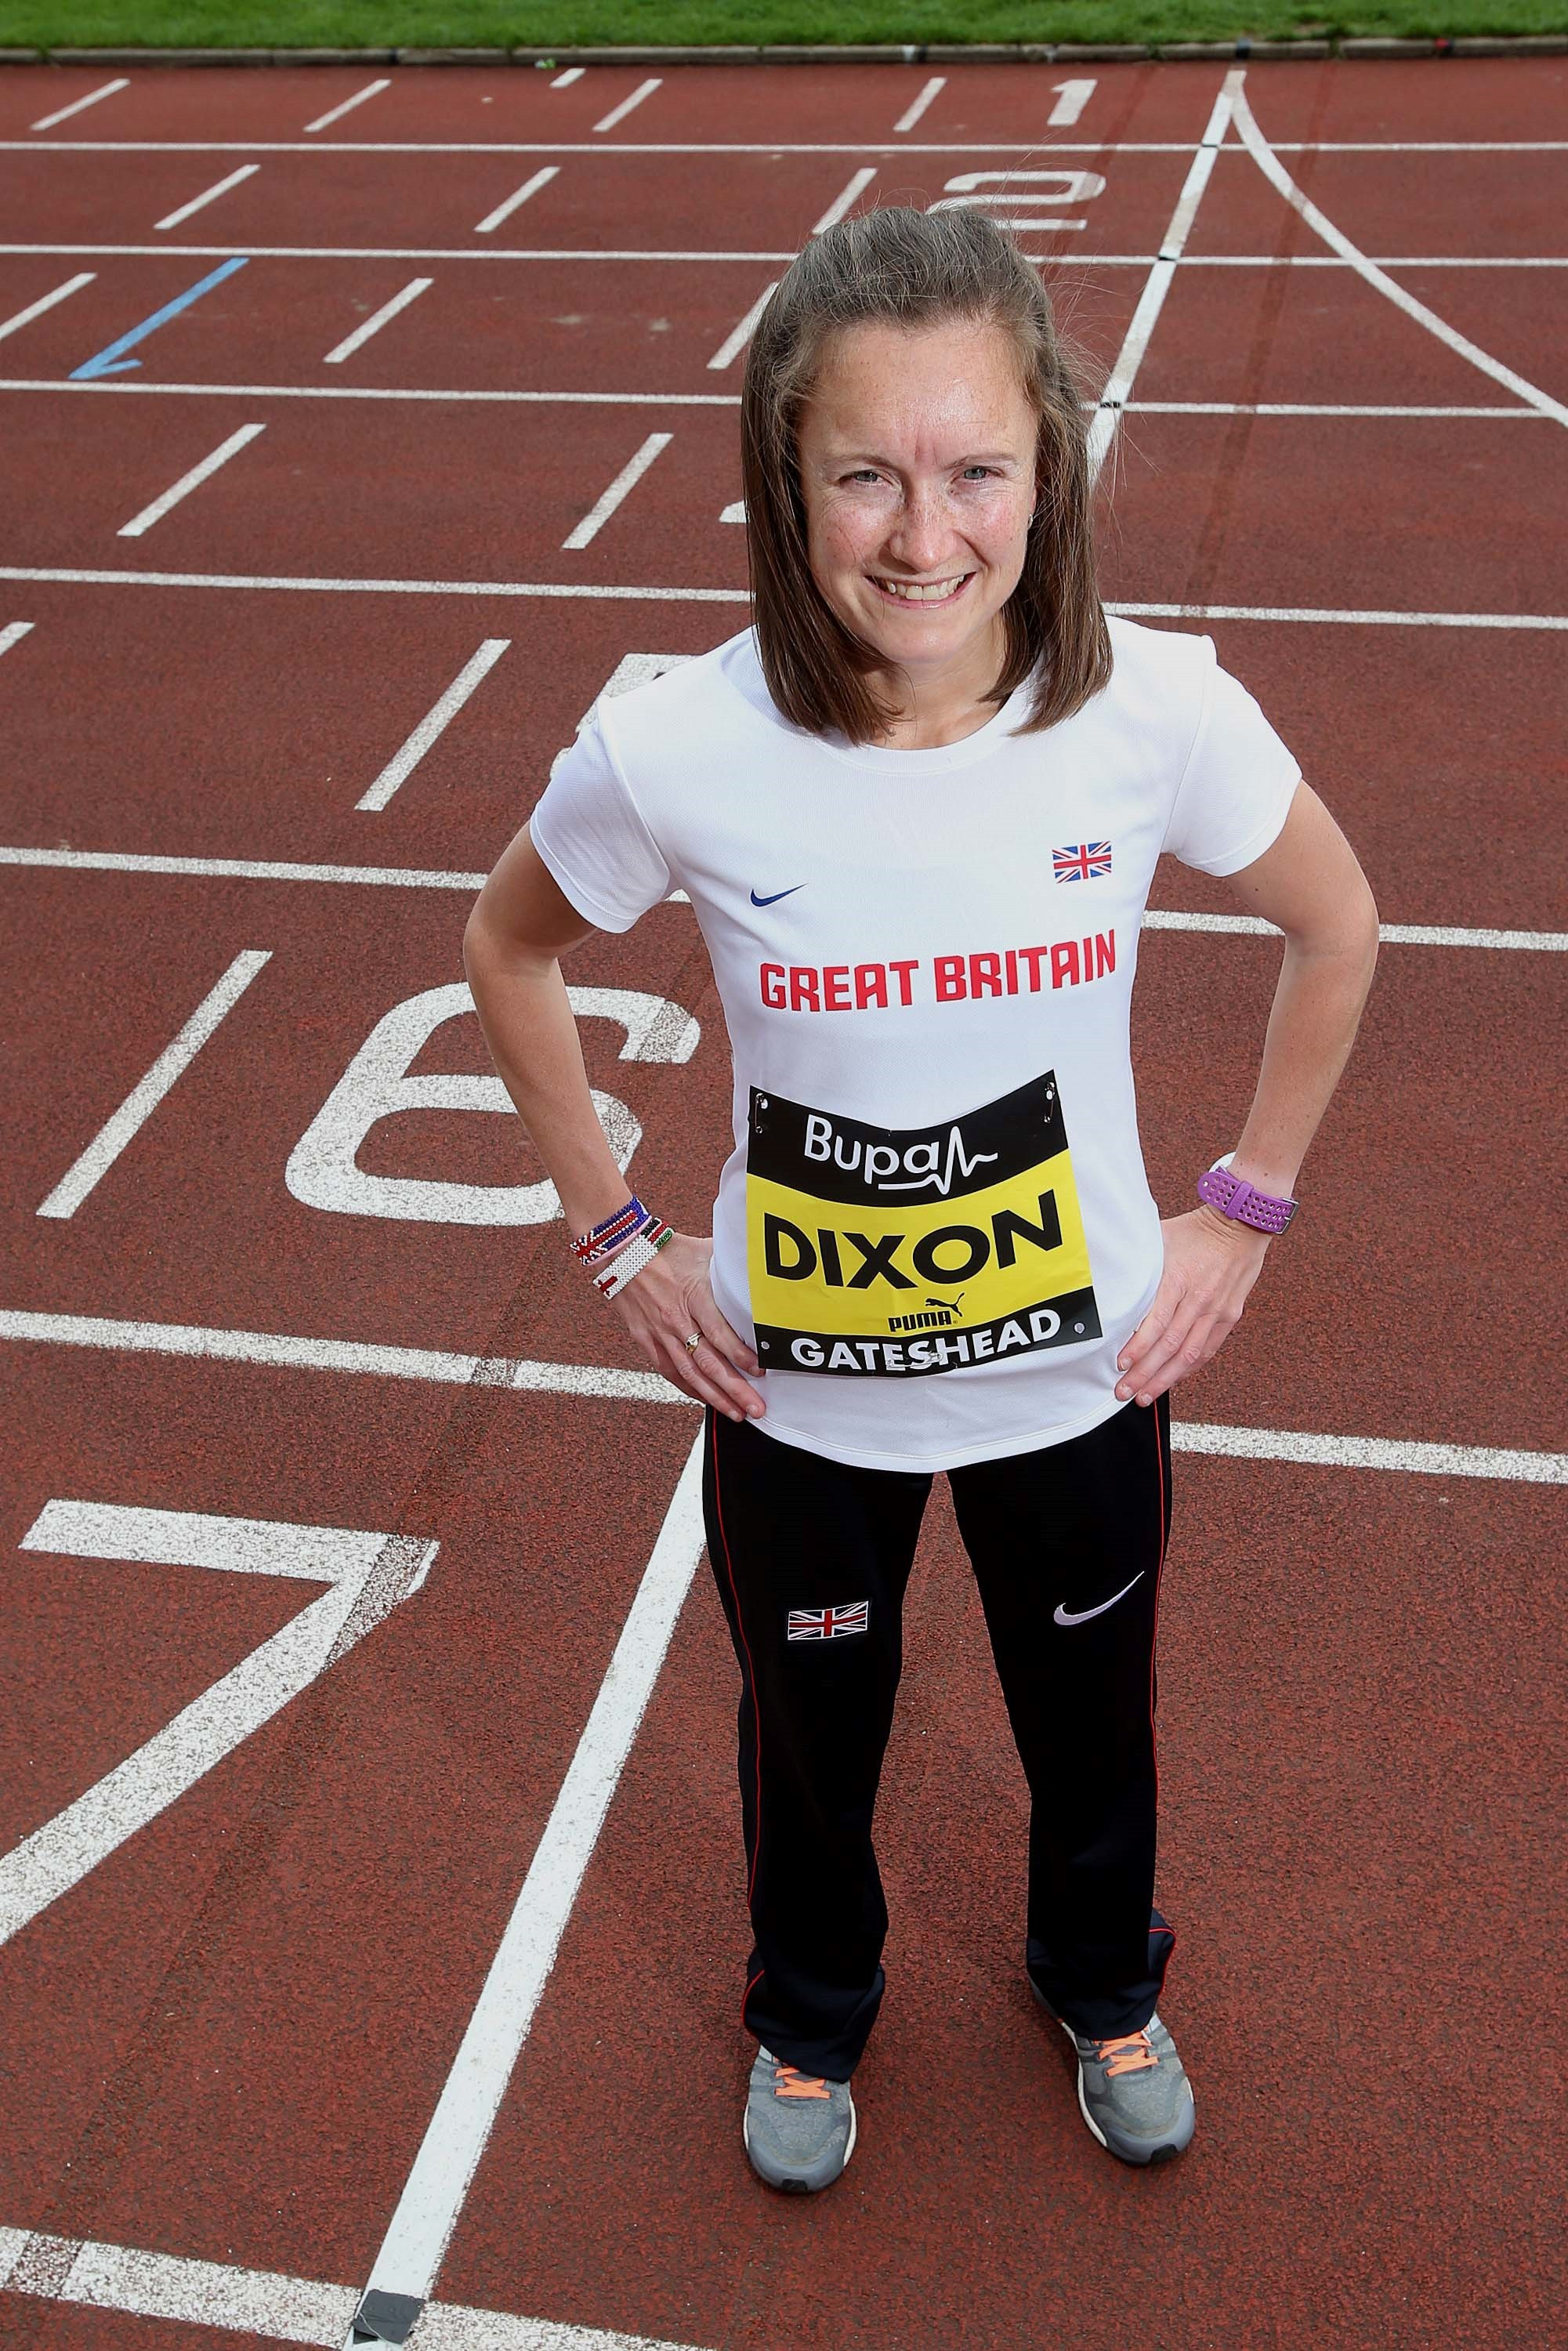 EXTENDED JOURNEY: Alyson Dixon will warm up for Sunday's Bupa Great North 10k by running to the start from her home in Sunderland